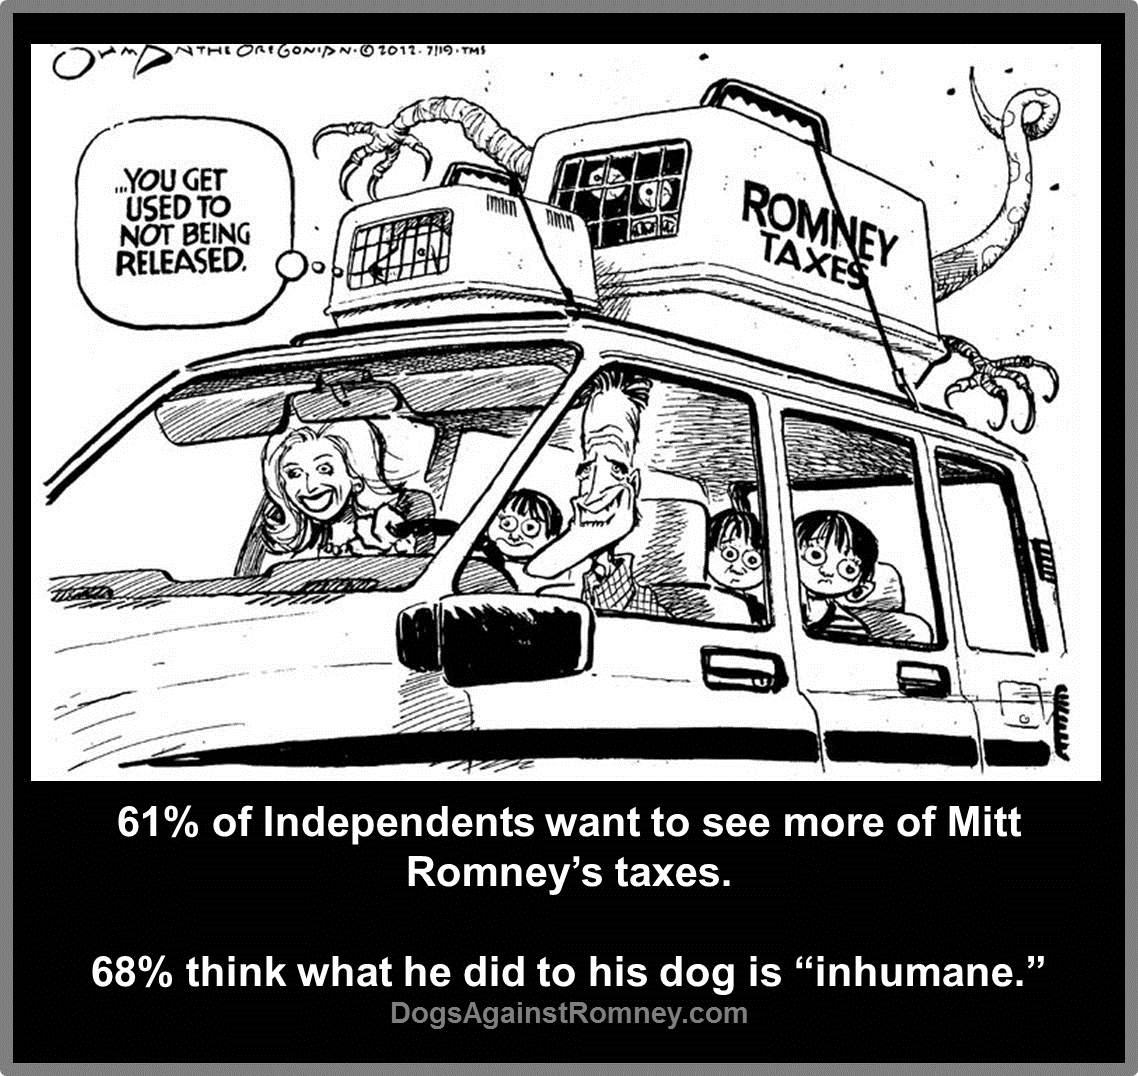 mitt romney cruel to dogs